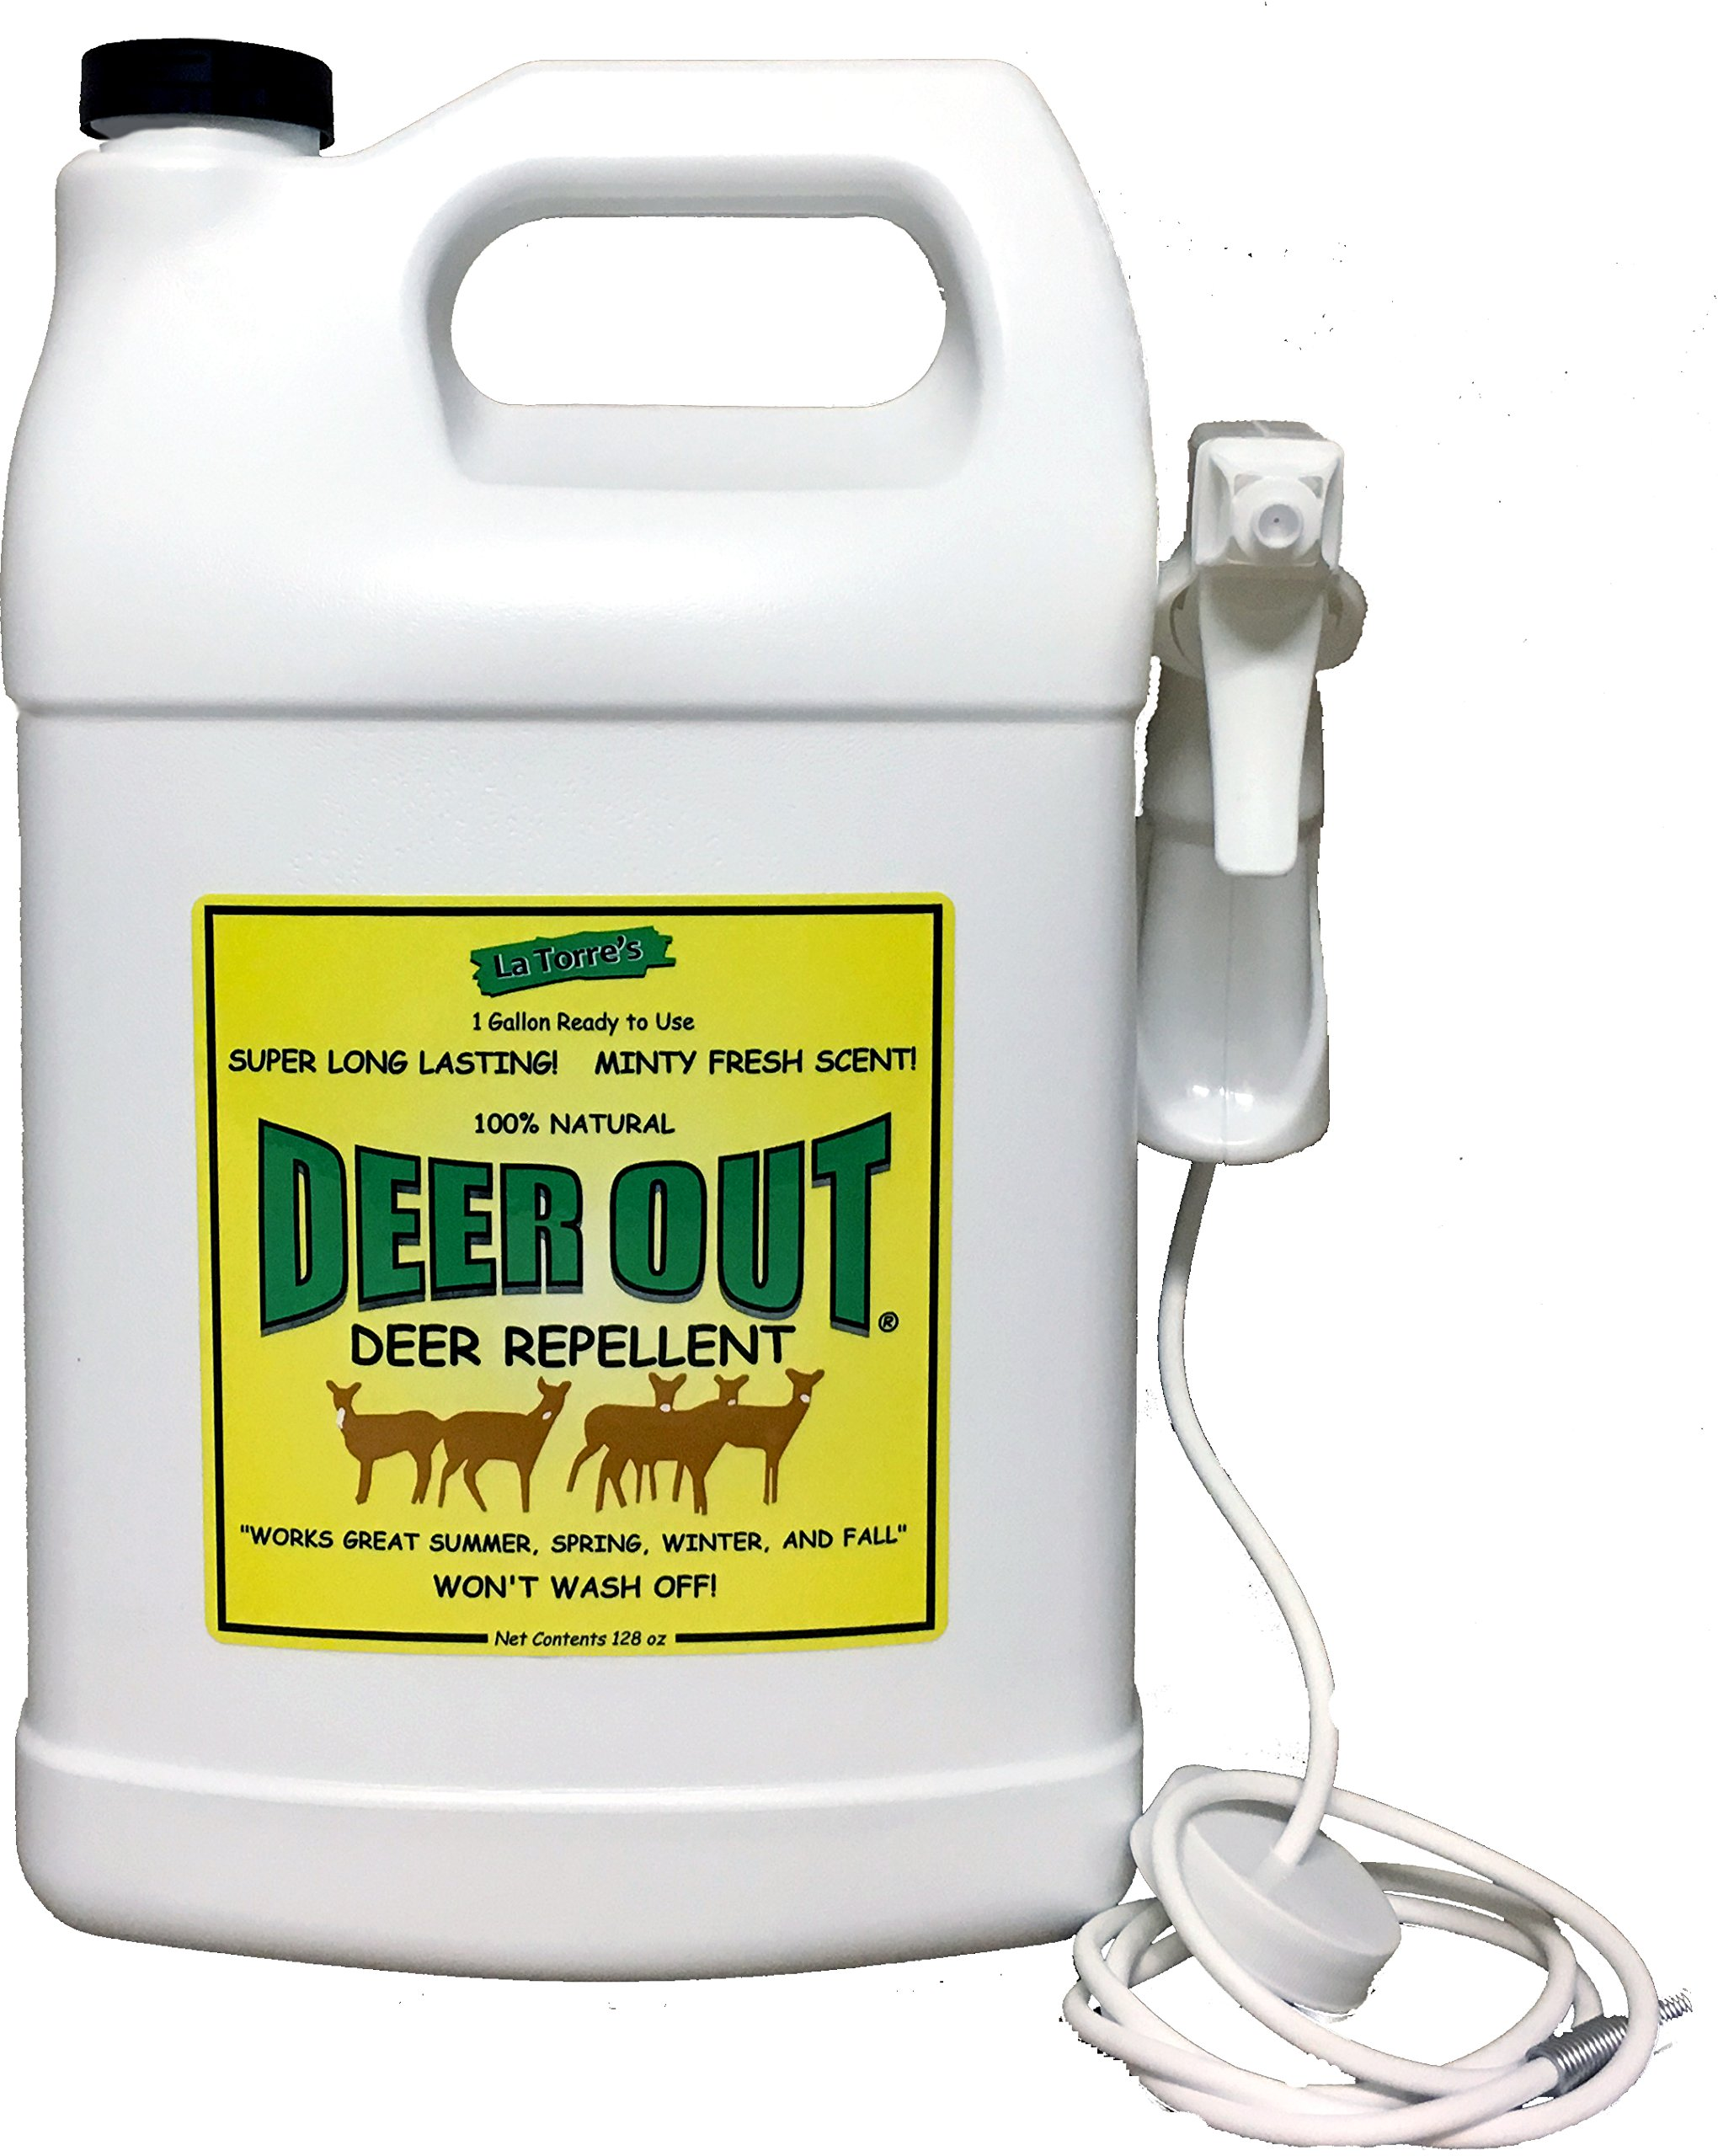 Deer Out 1 Gallon Ready-To-Use Deer Repellent